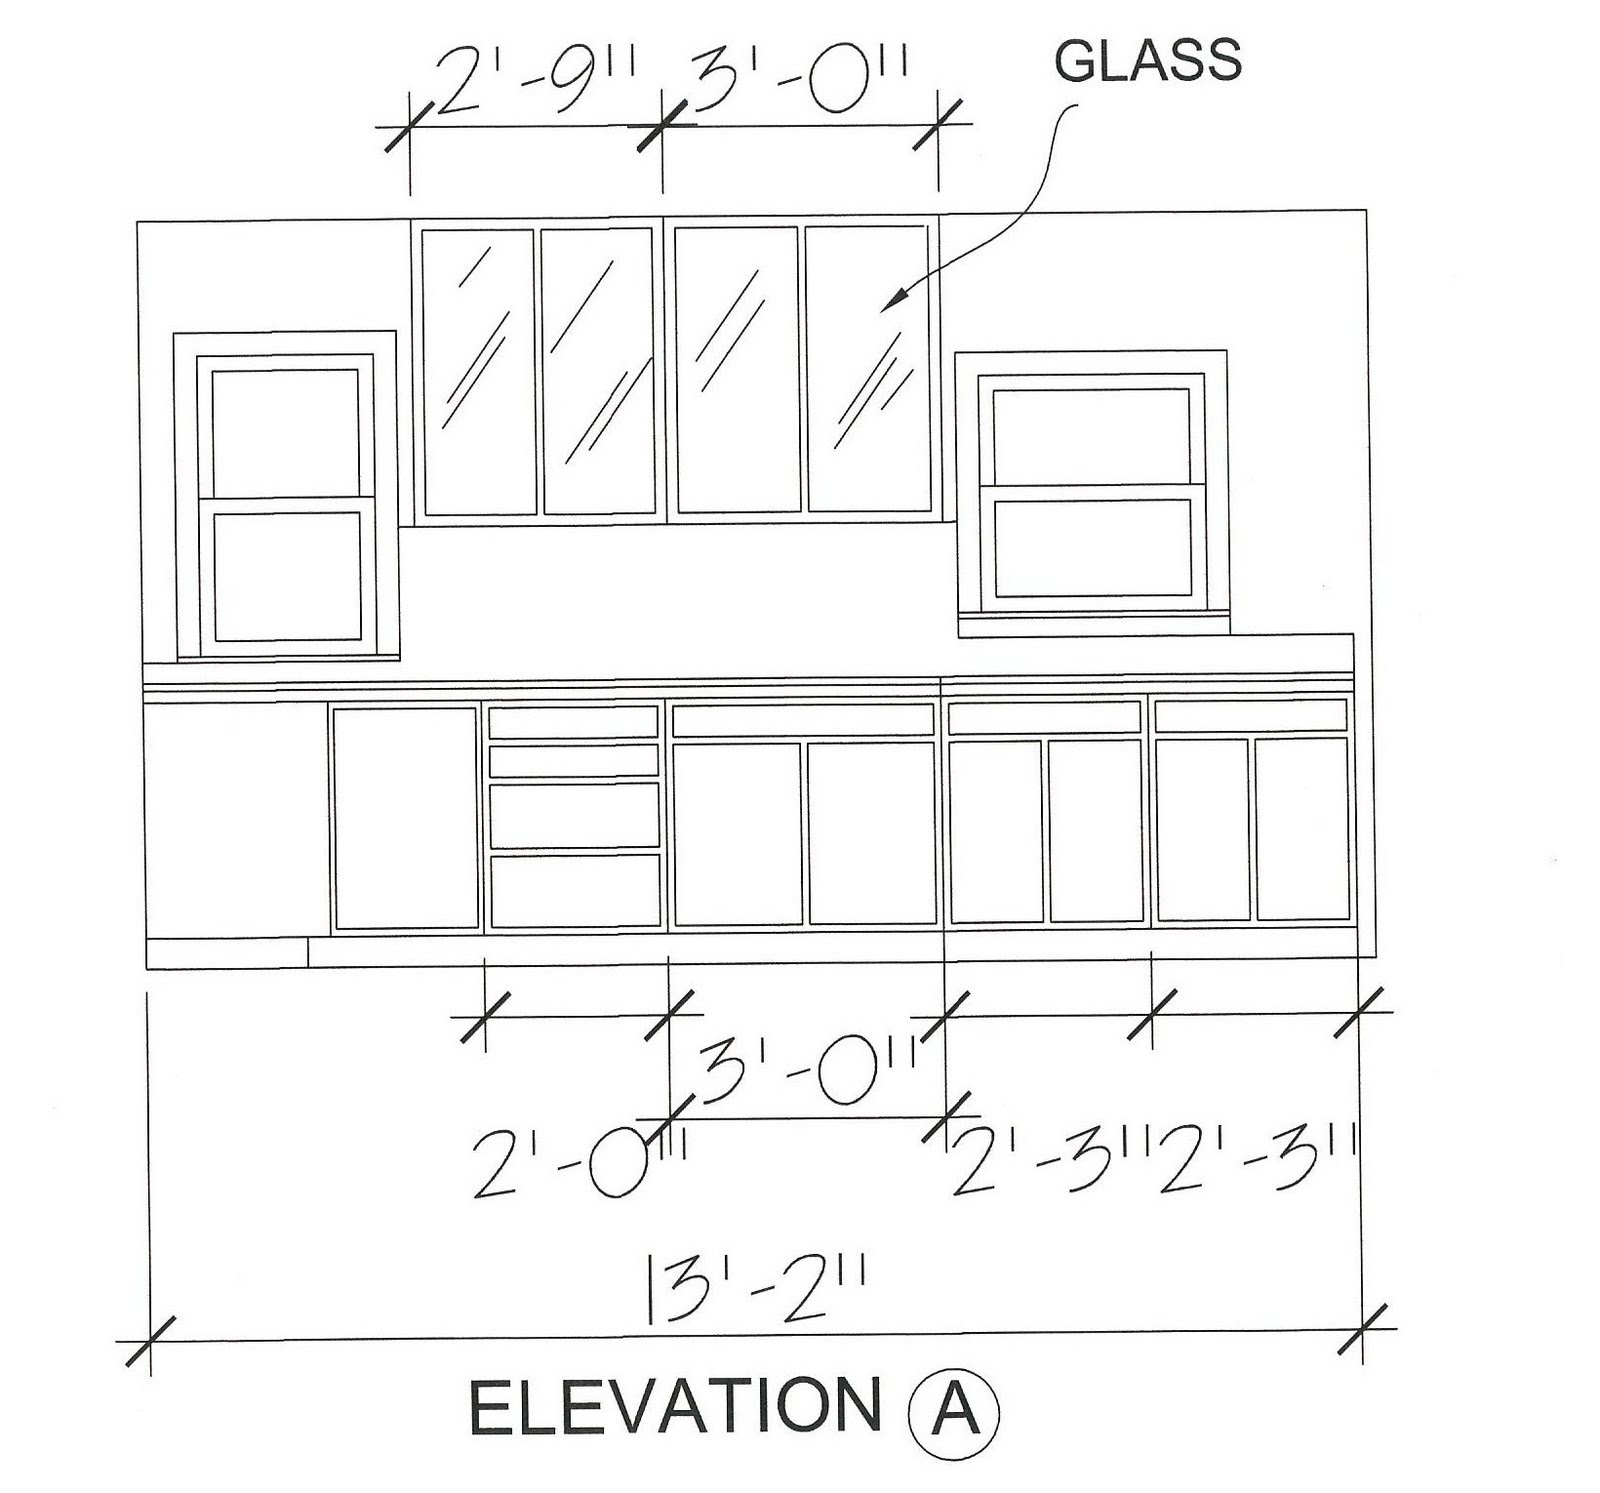 Designing Continued as well Infmicrowaveinstallation further Measurements For Microhood Installation furthermore Wiring For Microwave furthermore ADAhomes. on stove top shelf for microwave